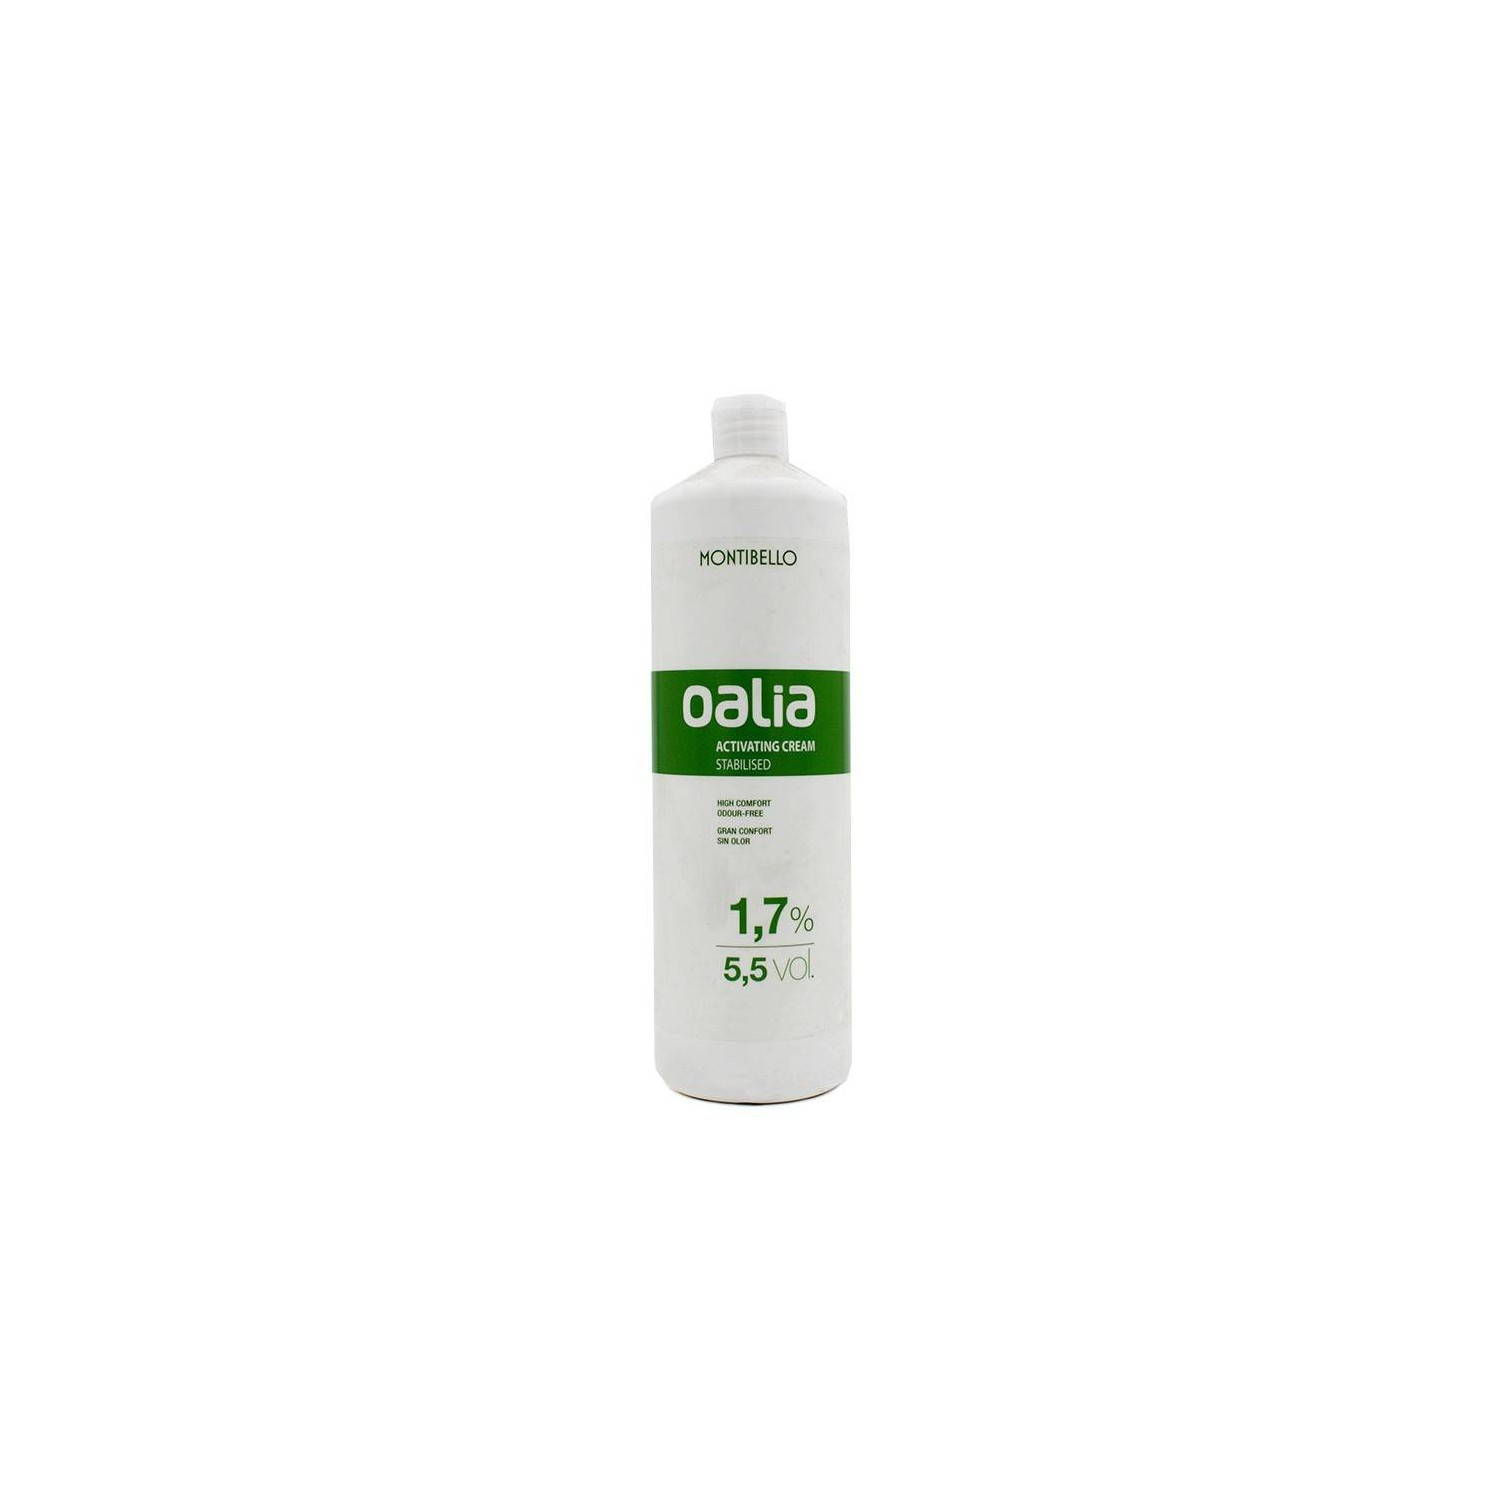 Montibello Oalia Act Cream 5.5 Vol 1.7% 1000 Ml